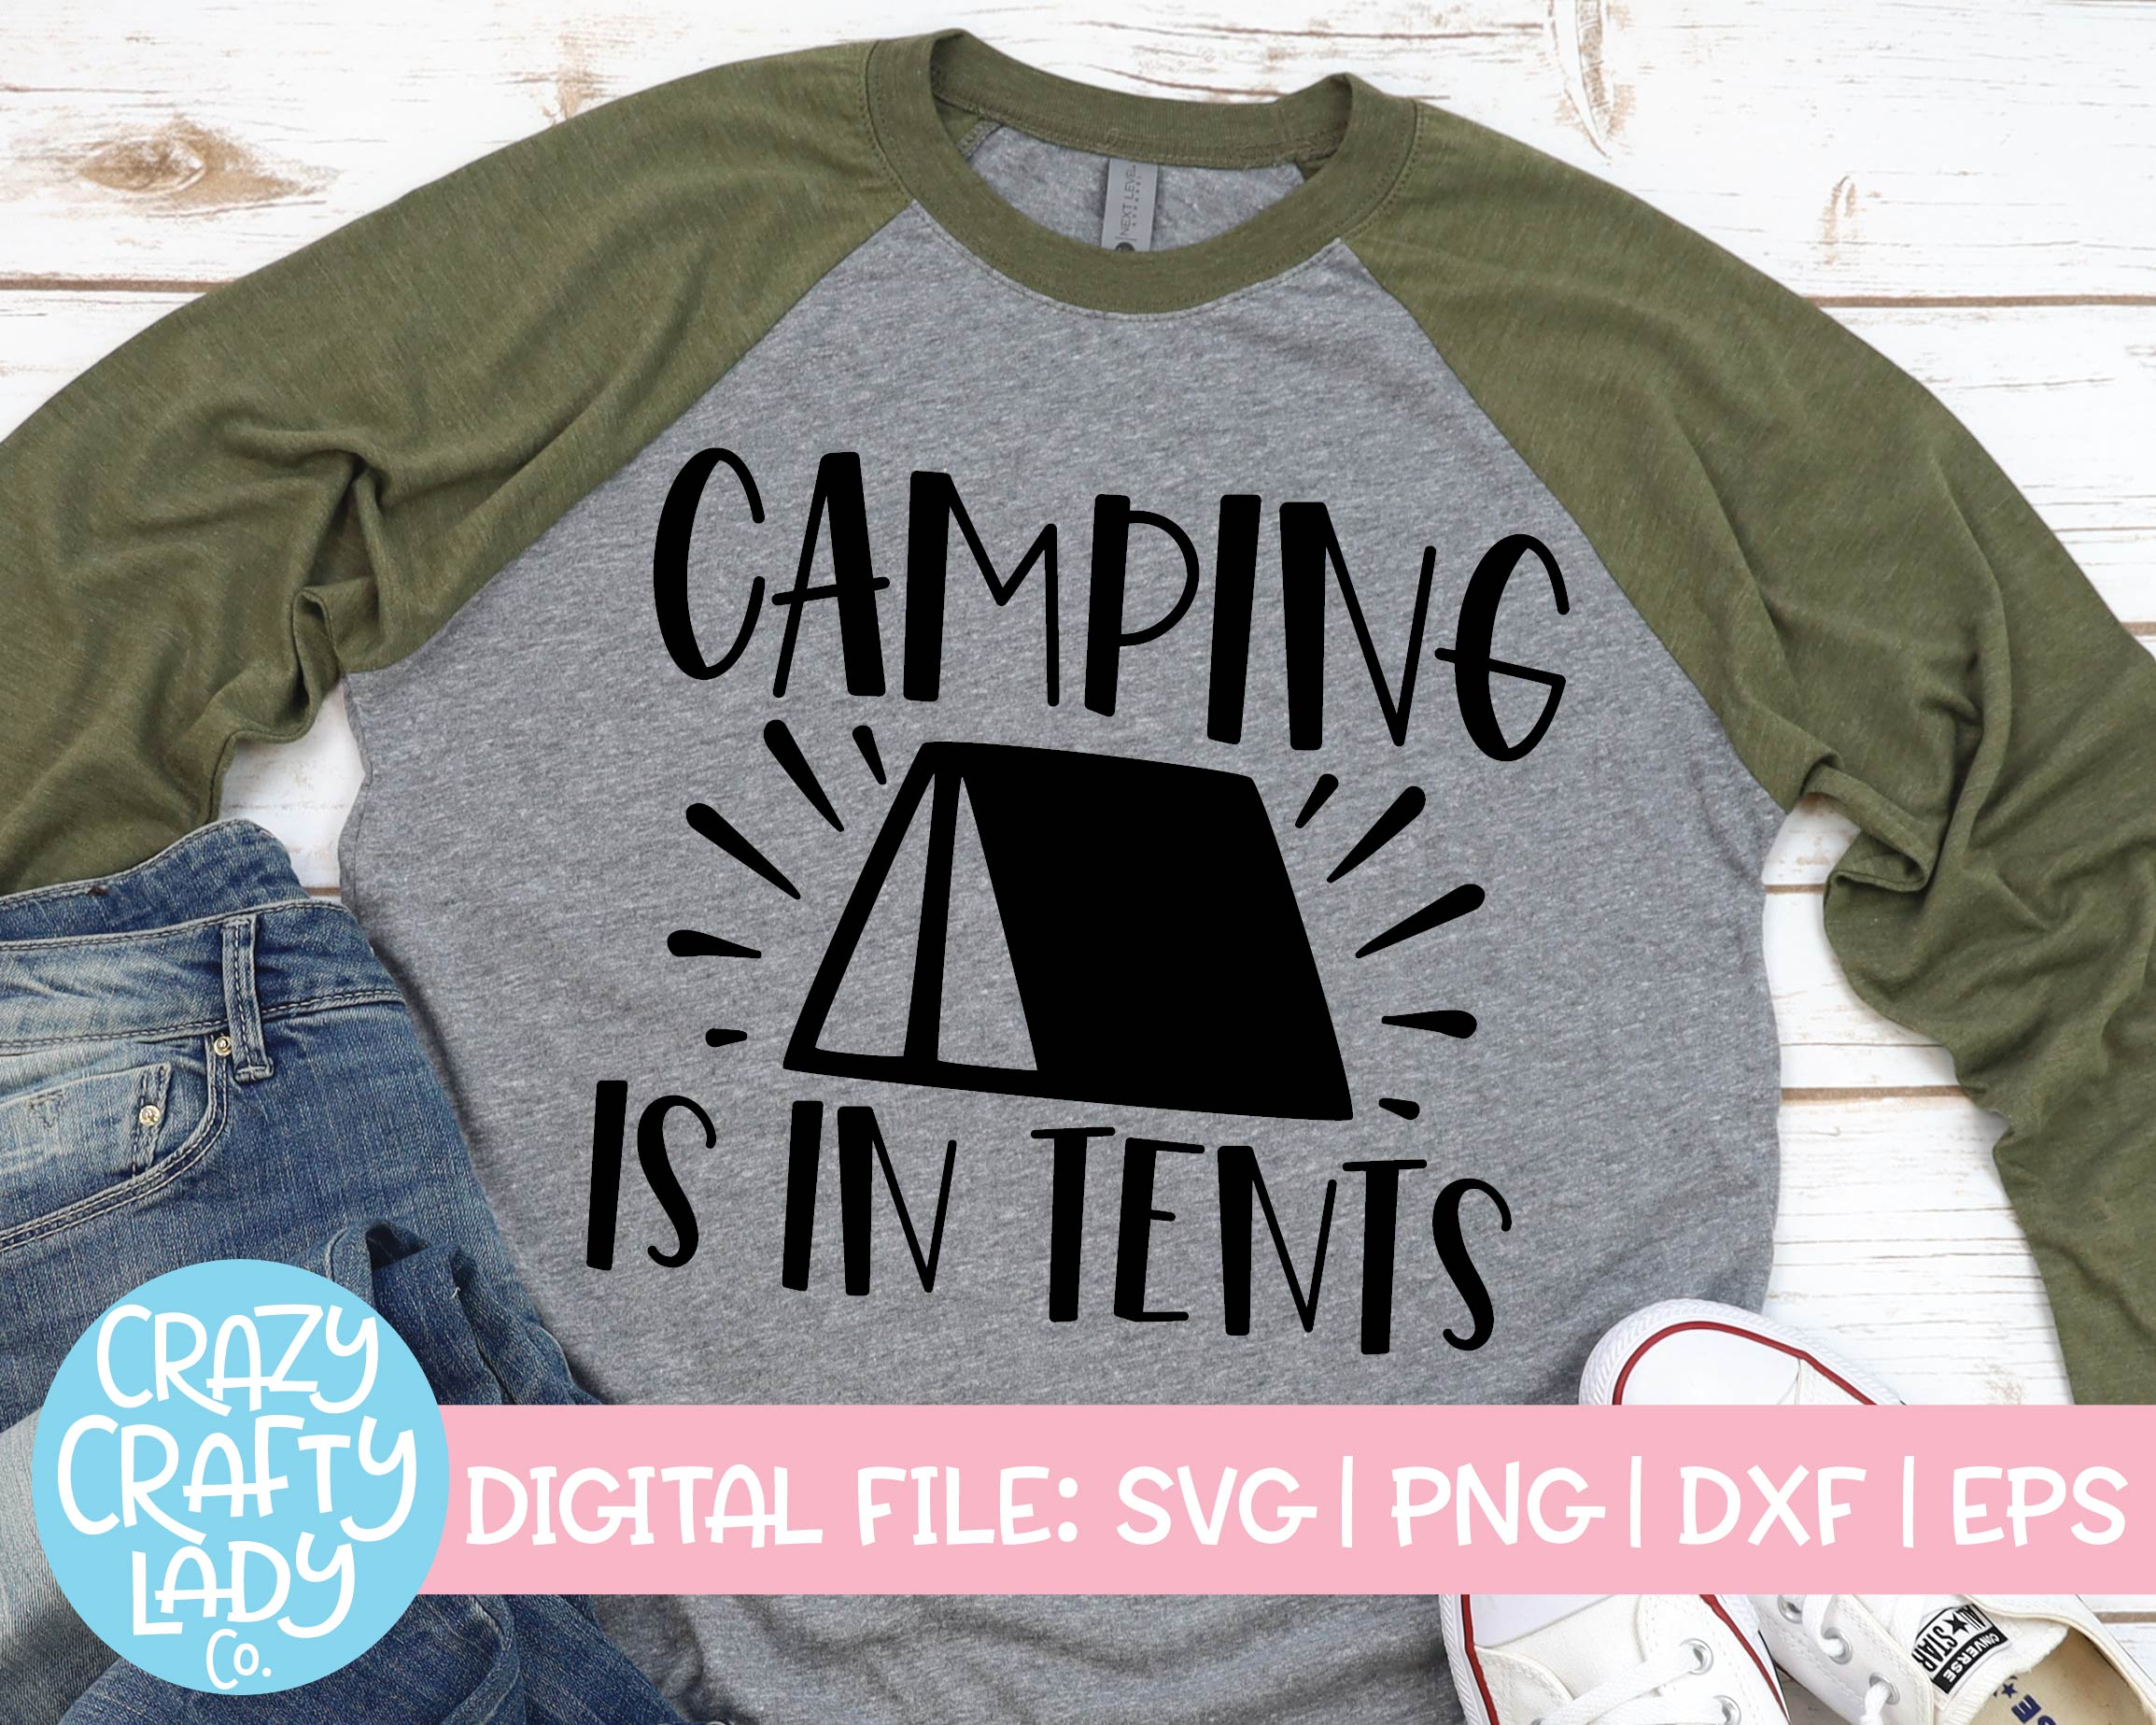 Camping Is In Tents Svg Cut File Crazy Crafty Lady Co